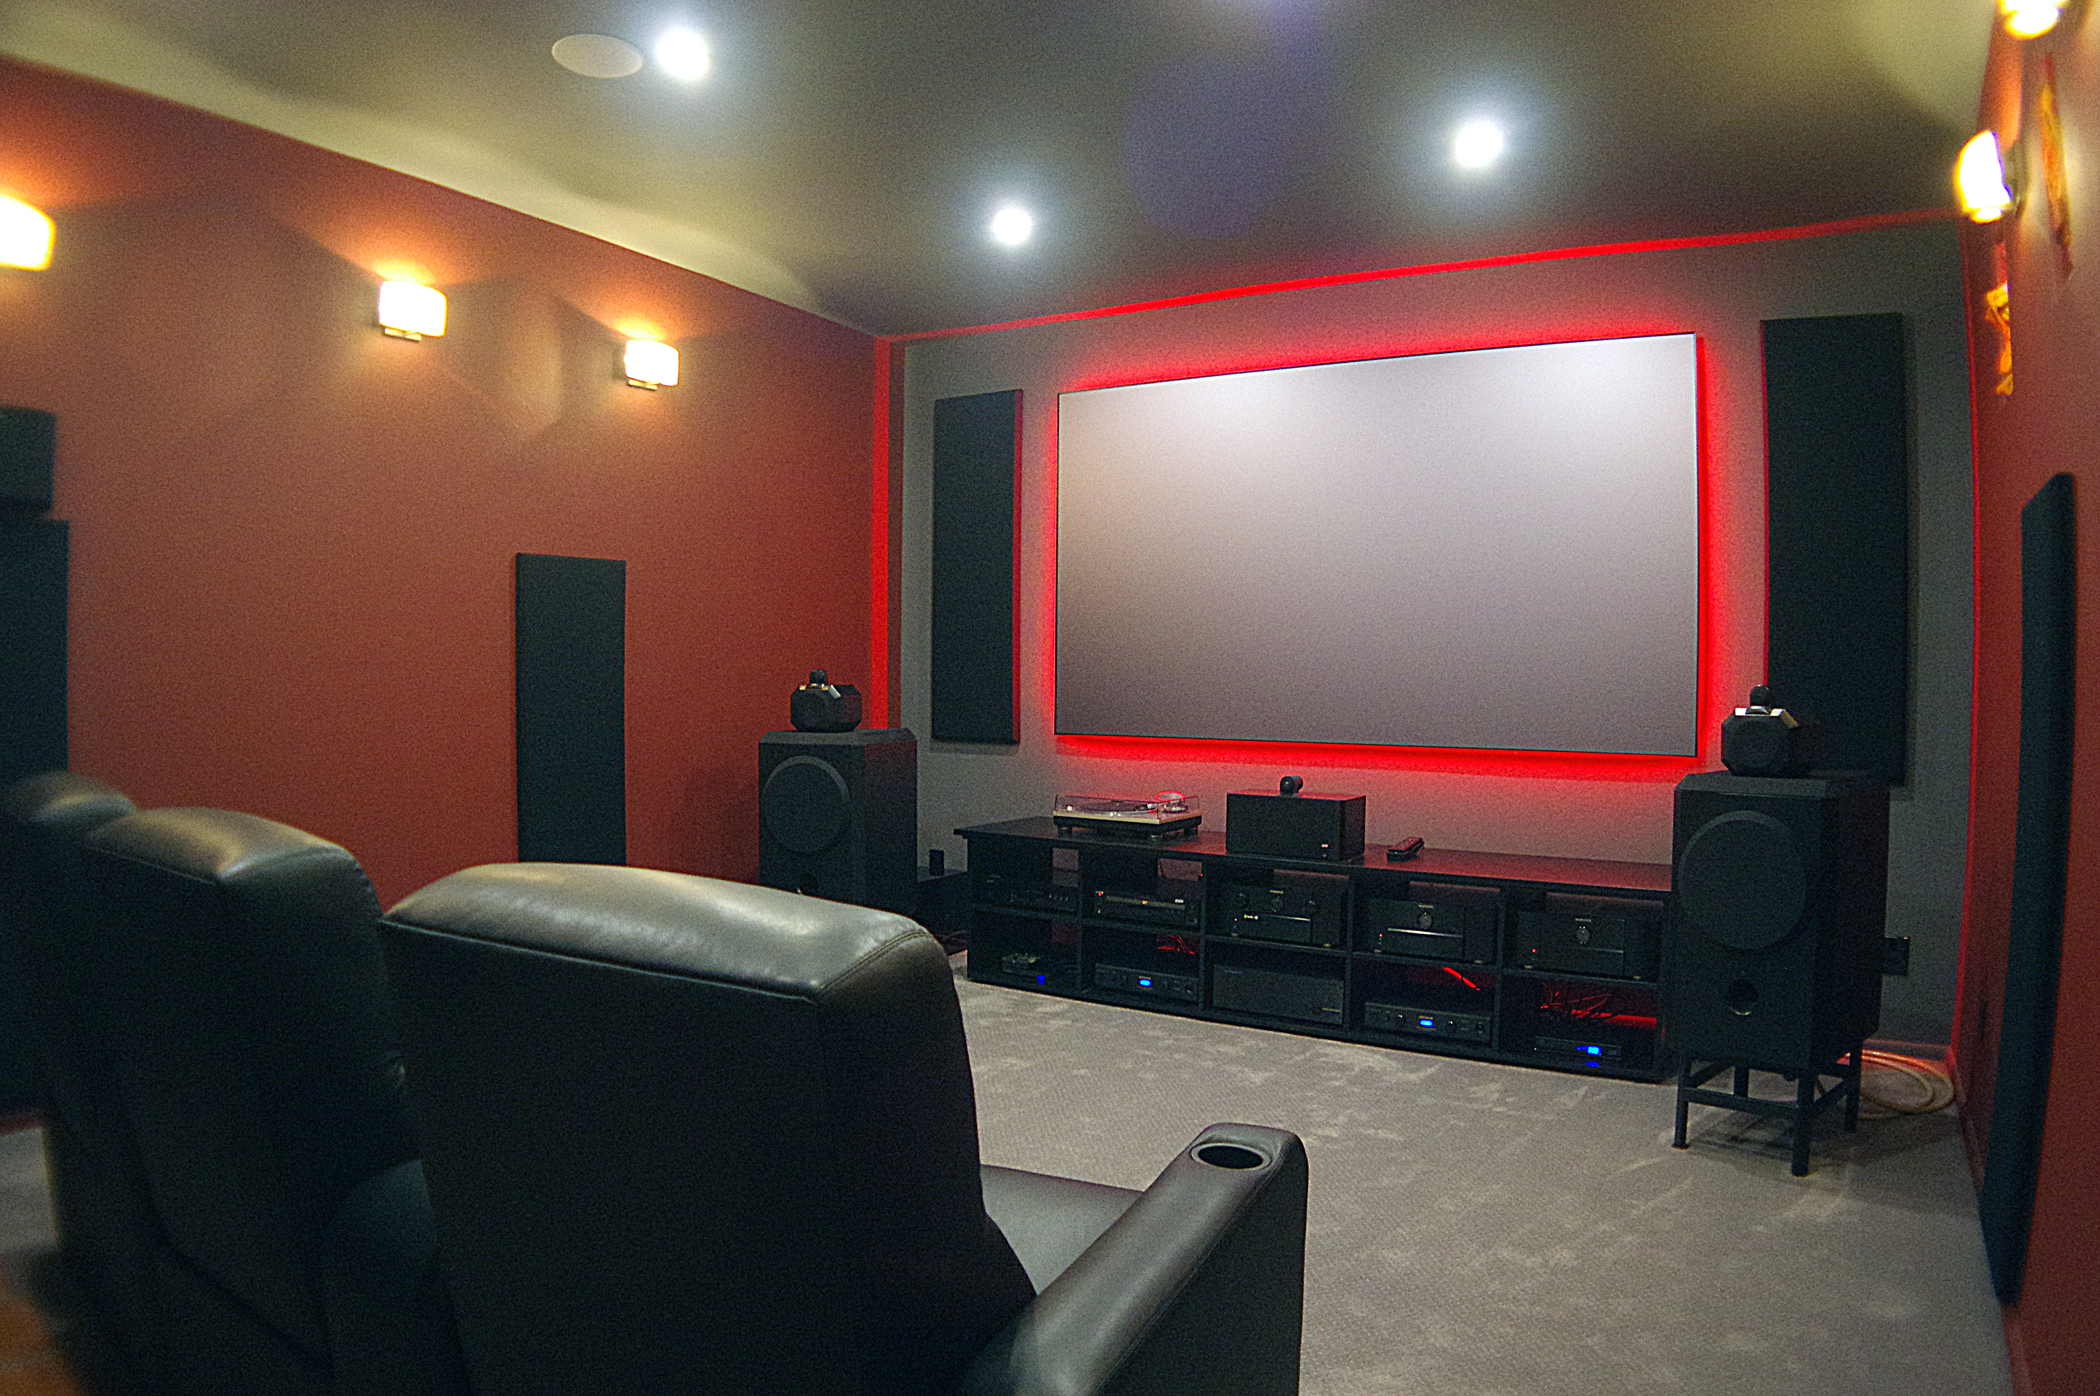 Home theater screen backlit red